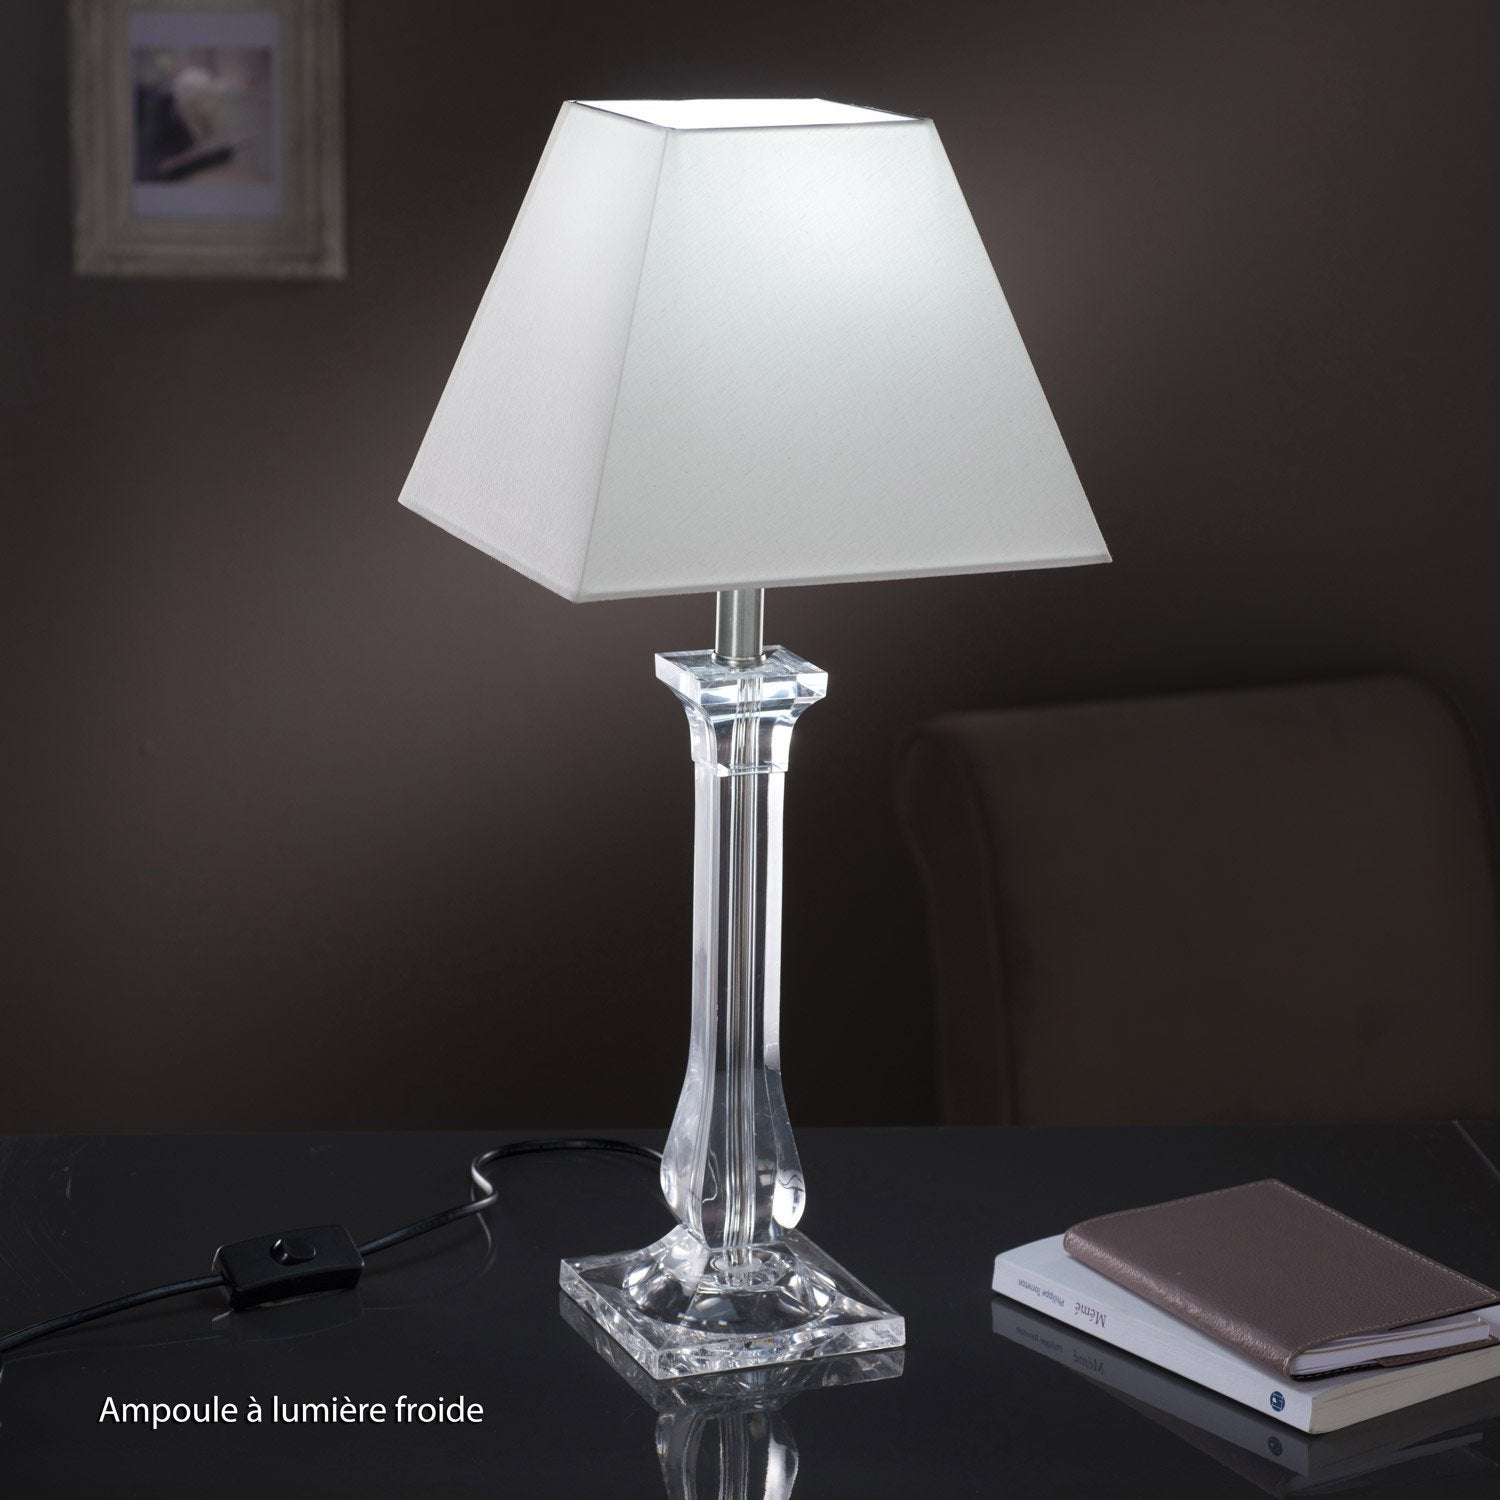 pied de lampe fantasy acrylique transparent 39 cm leroy merlin. Black Bedroom Furniture Sets. Home Design Ideas